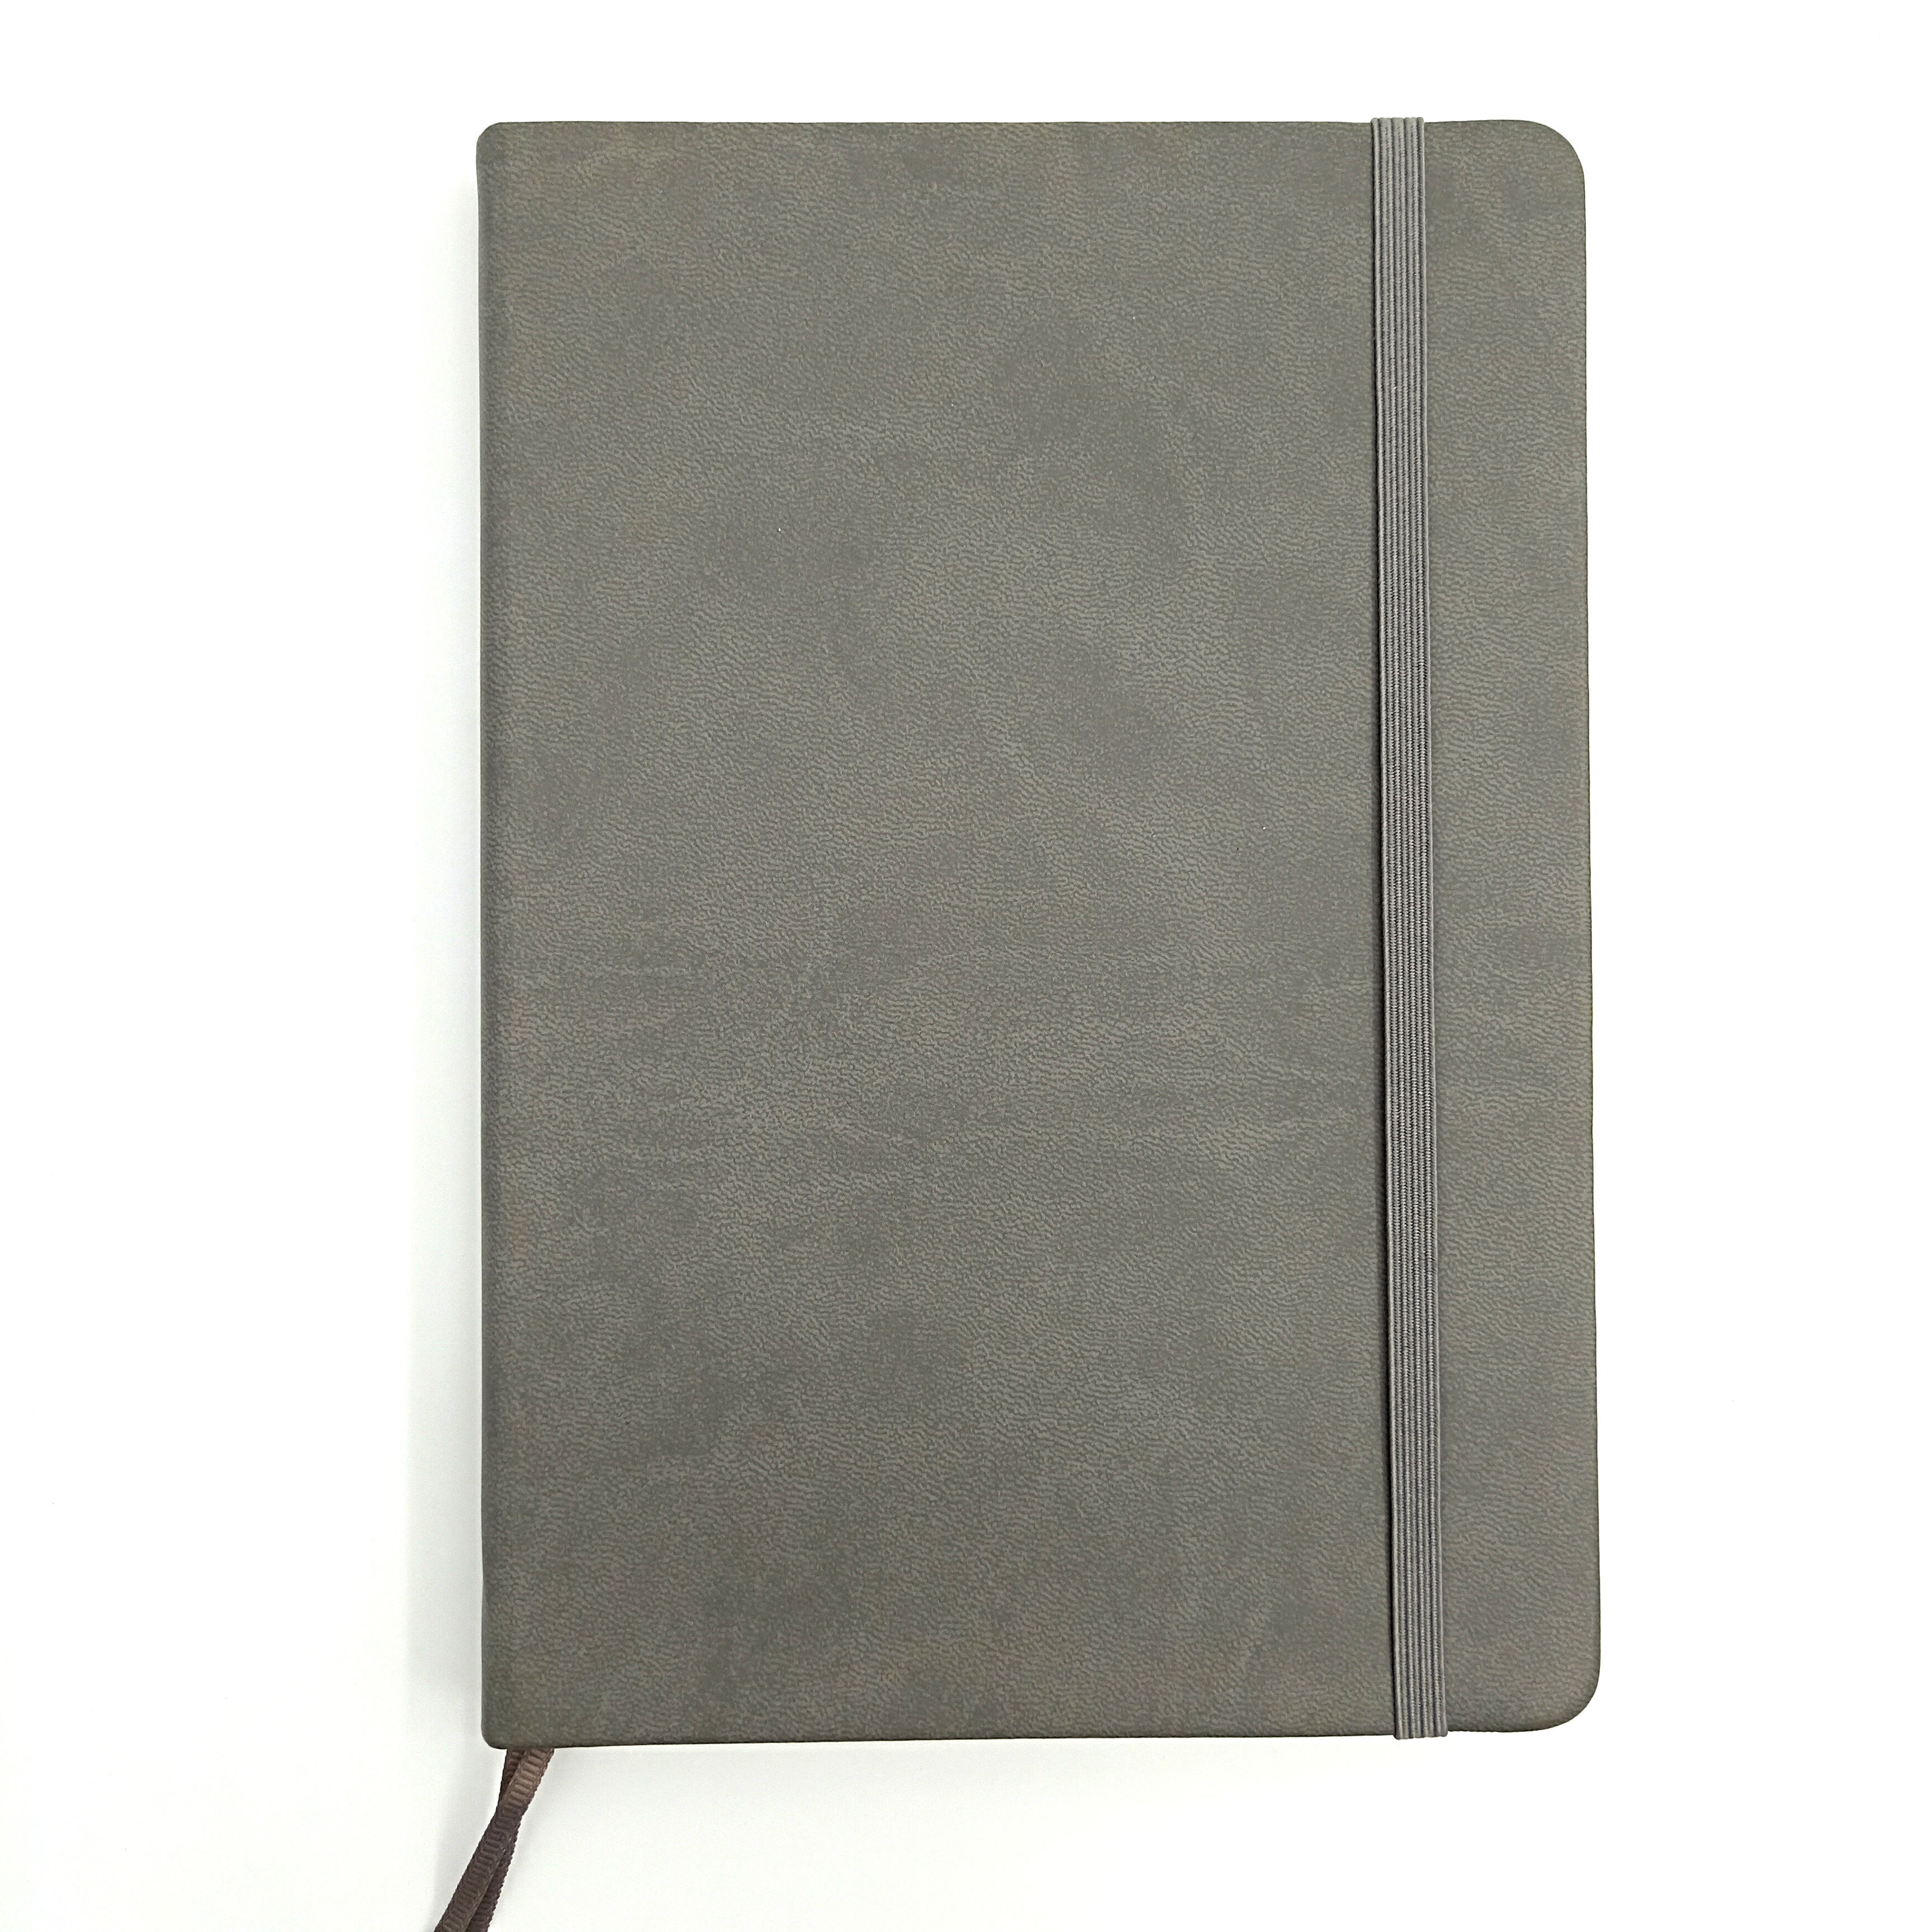 gray saffiano leather agenda/ man meeting leather planner binder low minimum order